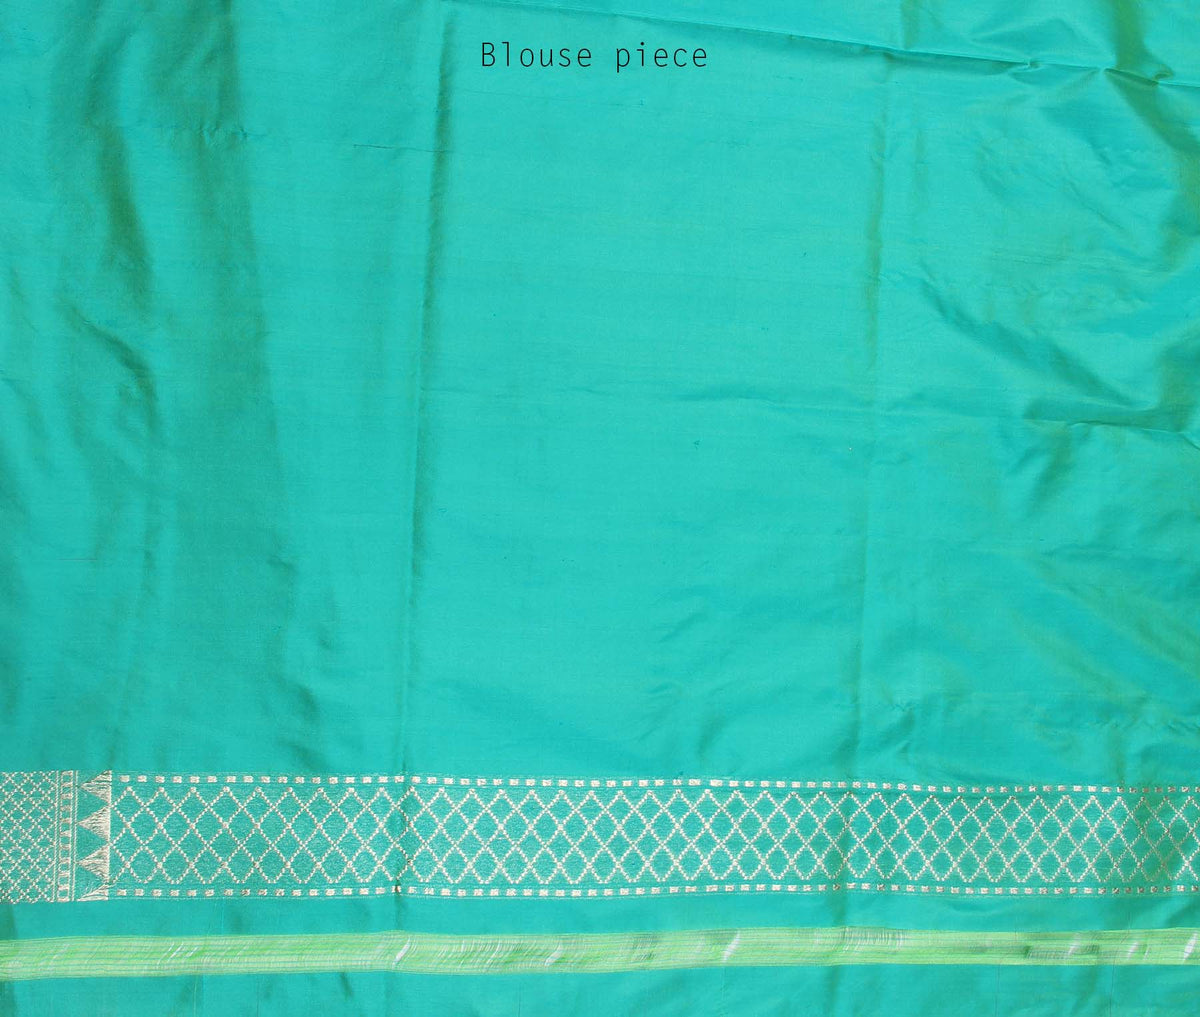 Sea Green Katan Silk Handwoven Banarasi saree with meenedar floral jaal border (4) blouse